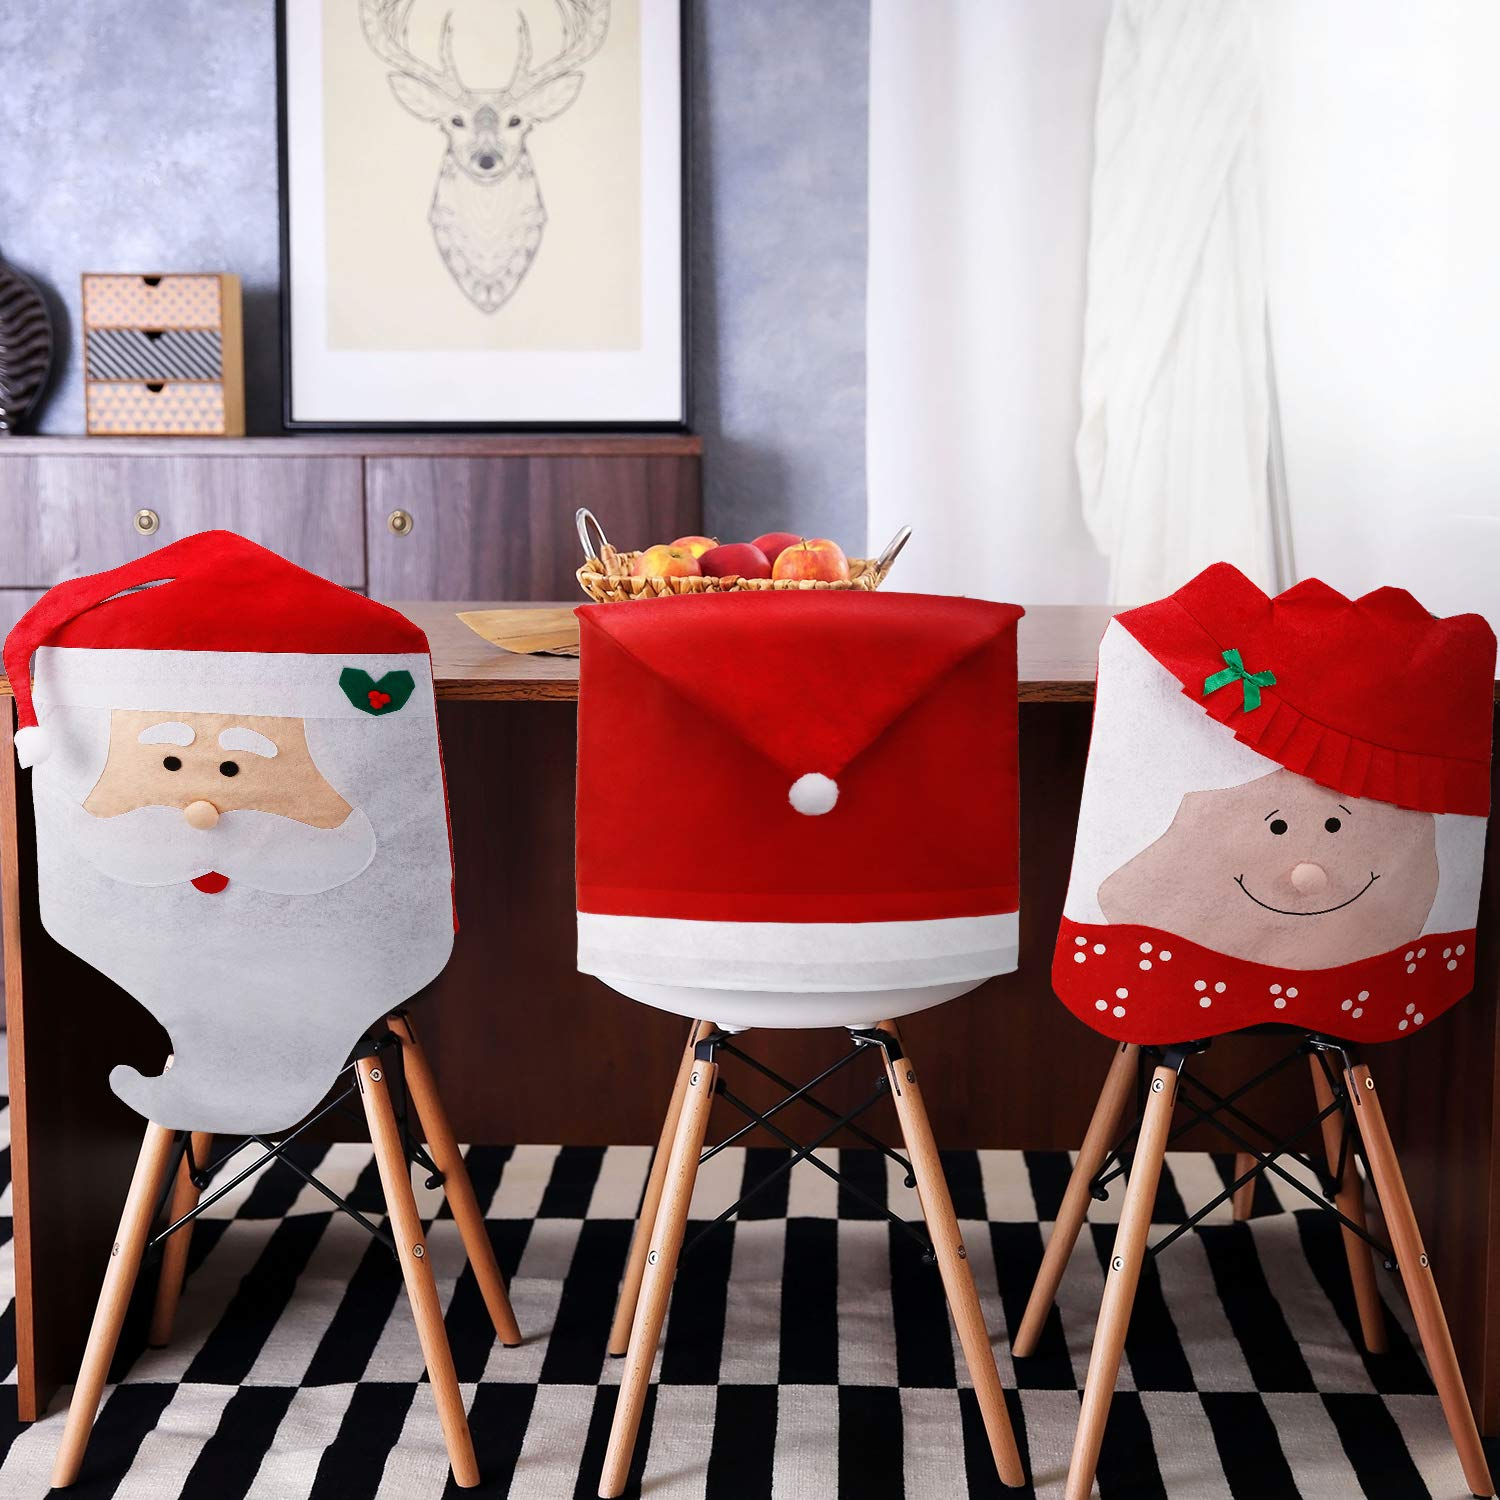 Tatuo 10 Pieces Christmas Chair Covers Decor, Santa Claus Red Hat Snowflake  Chair Xmas Cap, Kitchen Dining Chair Slipcovers Sets for Christmas Holiday